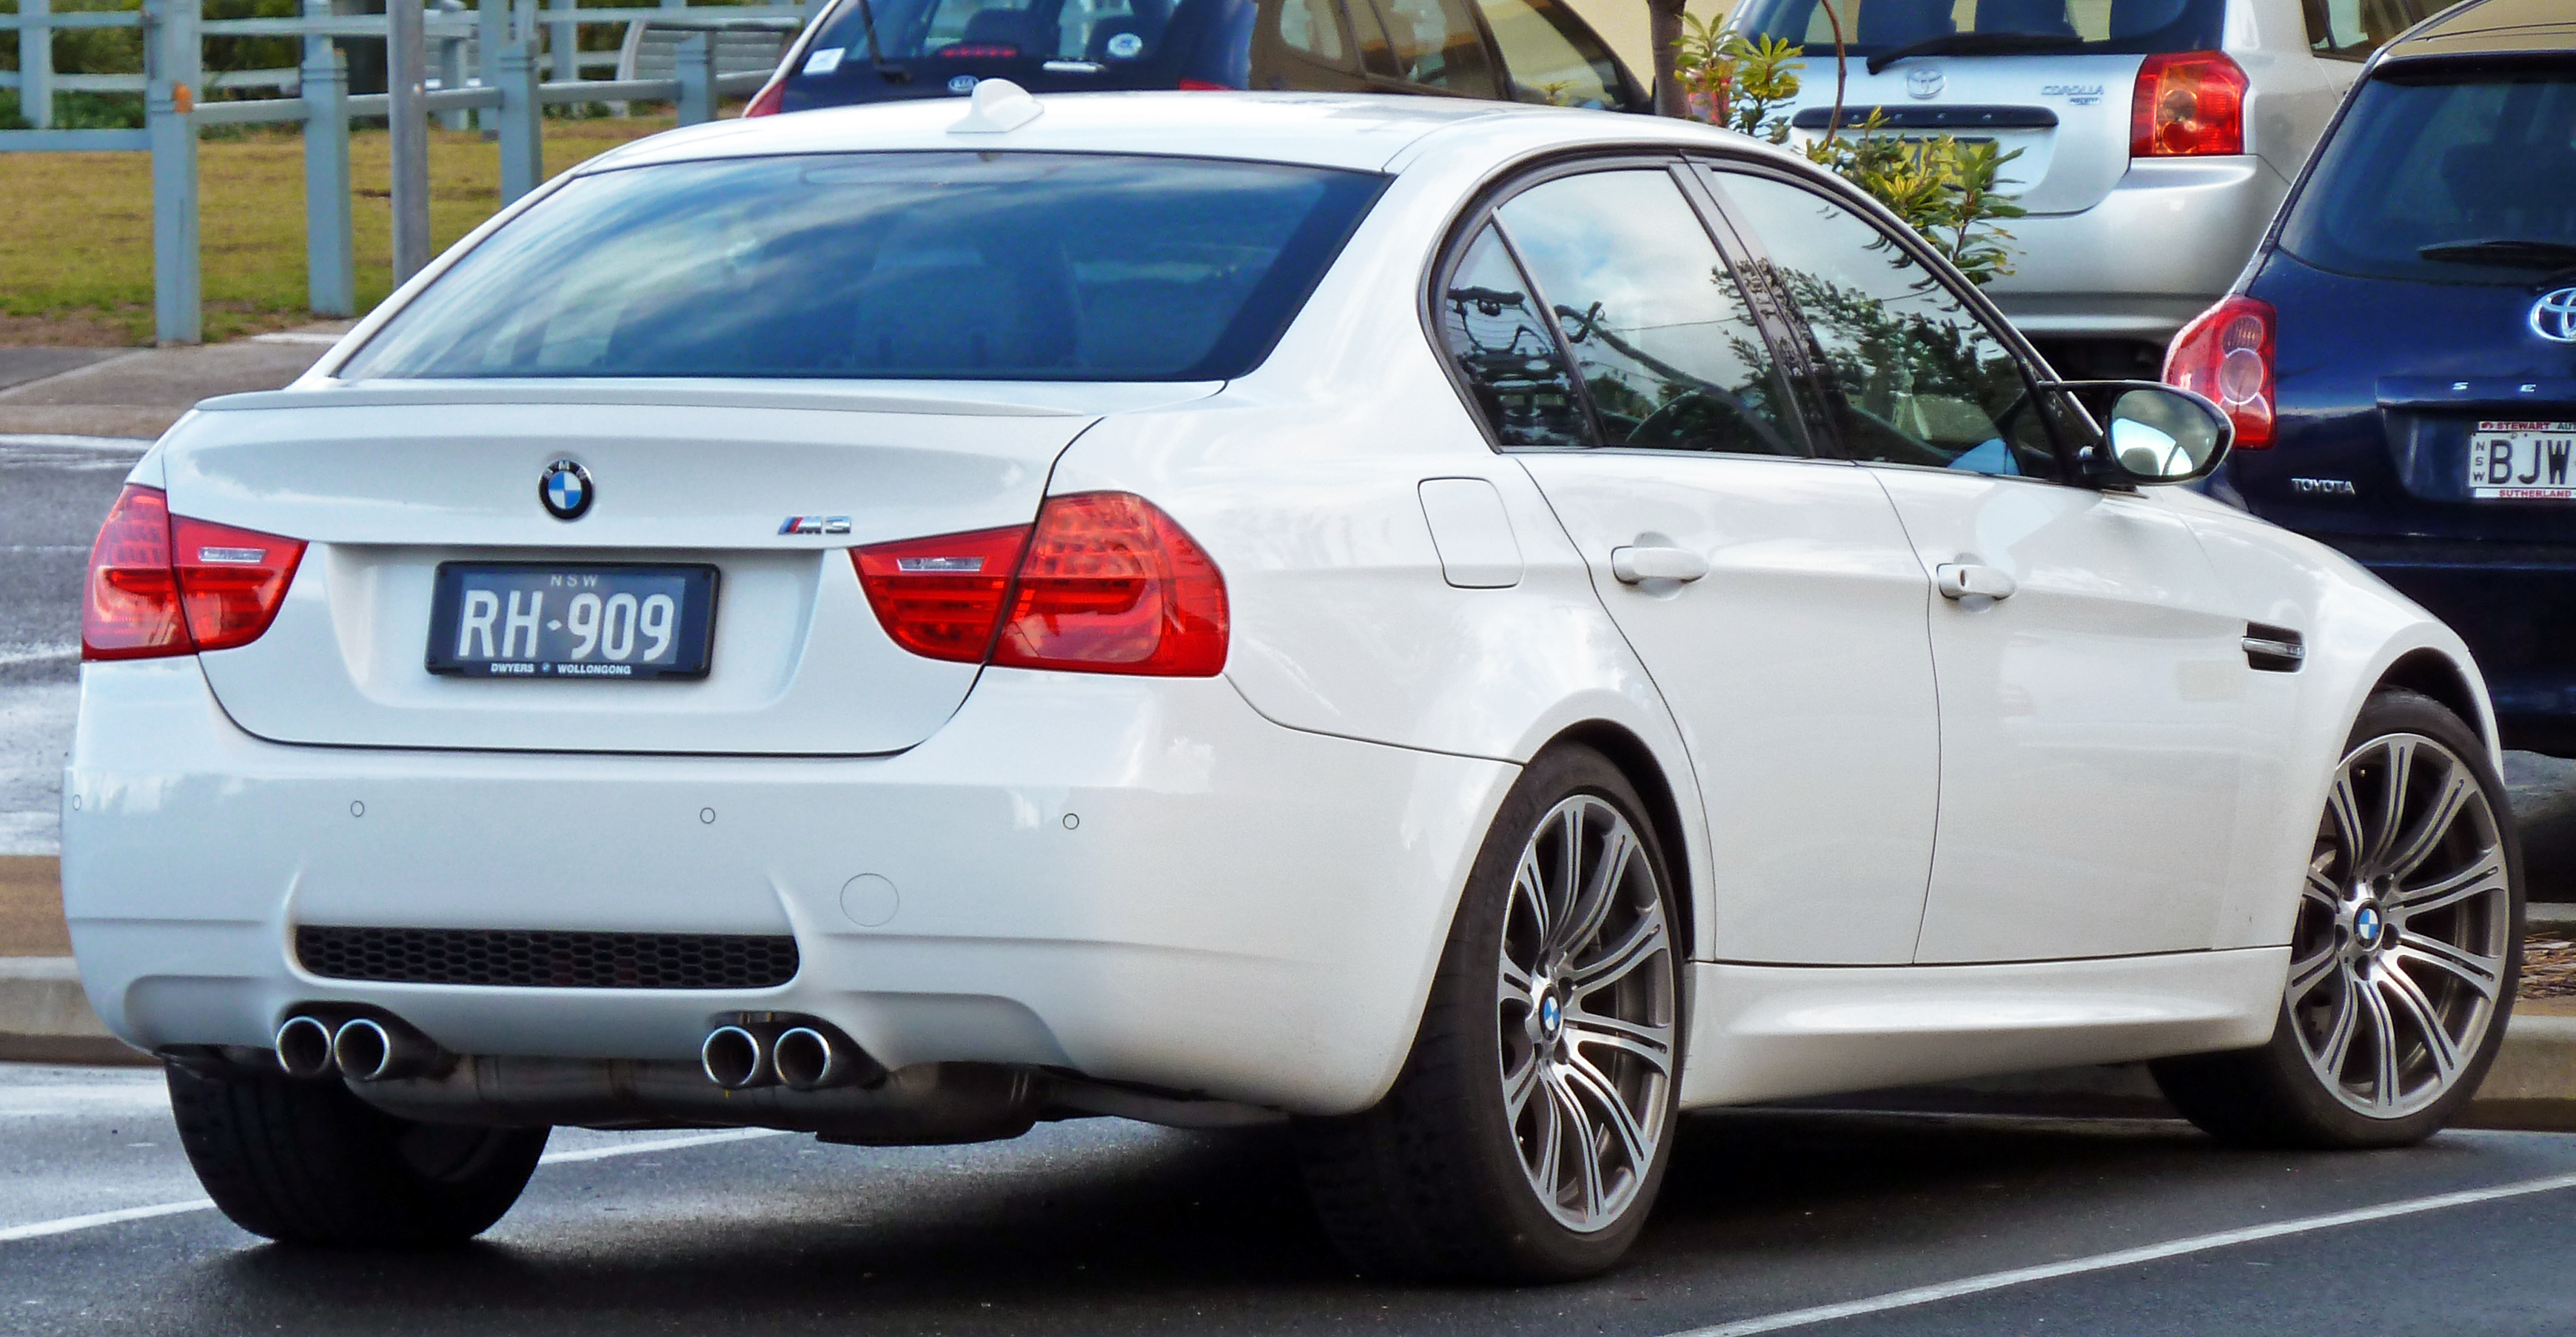 2008 Bmw M3 coupe (e90) - pictures, information and specs ...